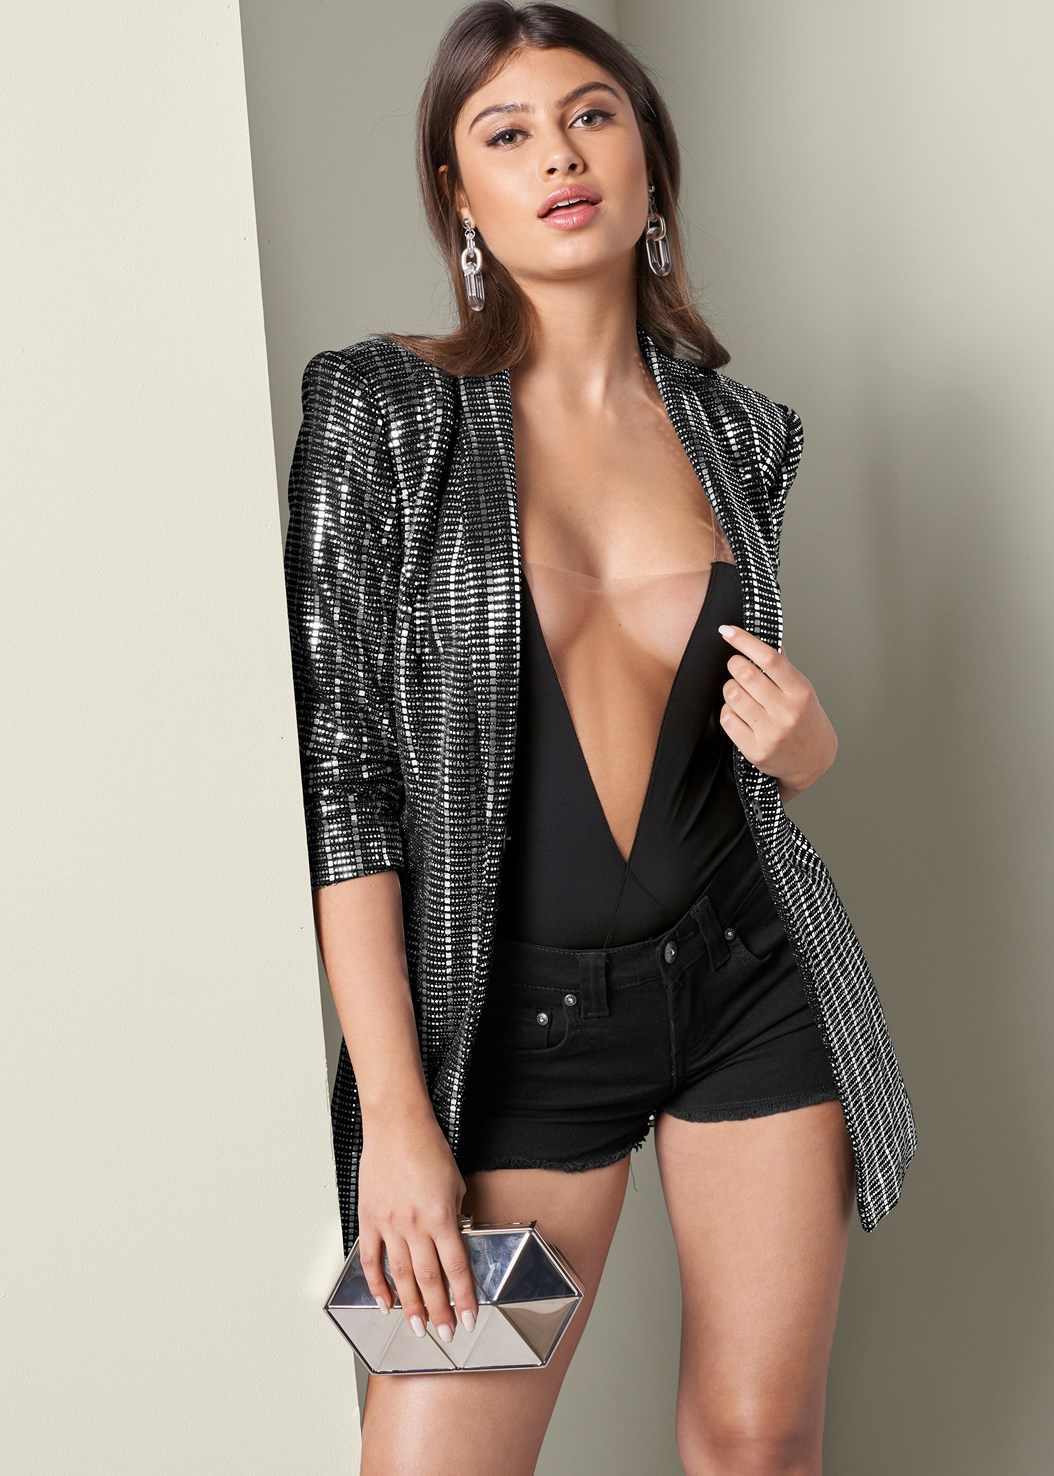 Embellished Jacket,Illusion Mesh Bodysuit,Frayed Cut Off Jean Shorts,High Heel Strappy Sandals